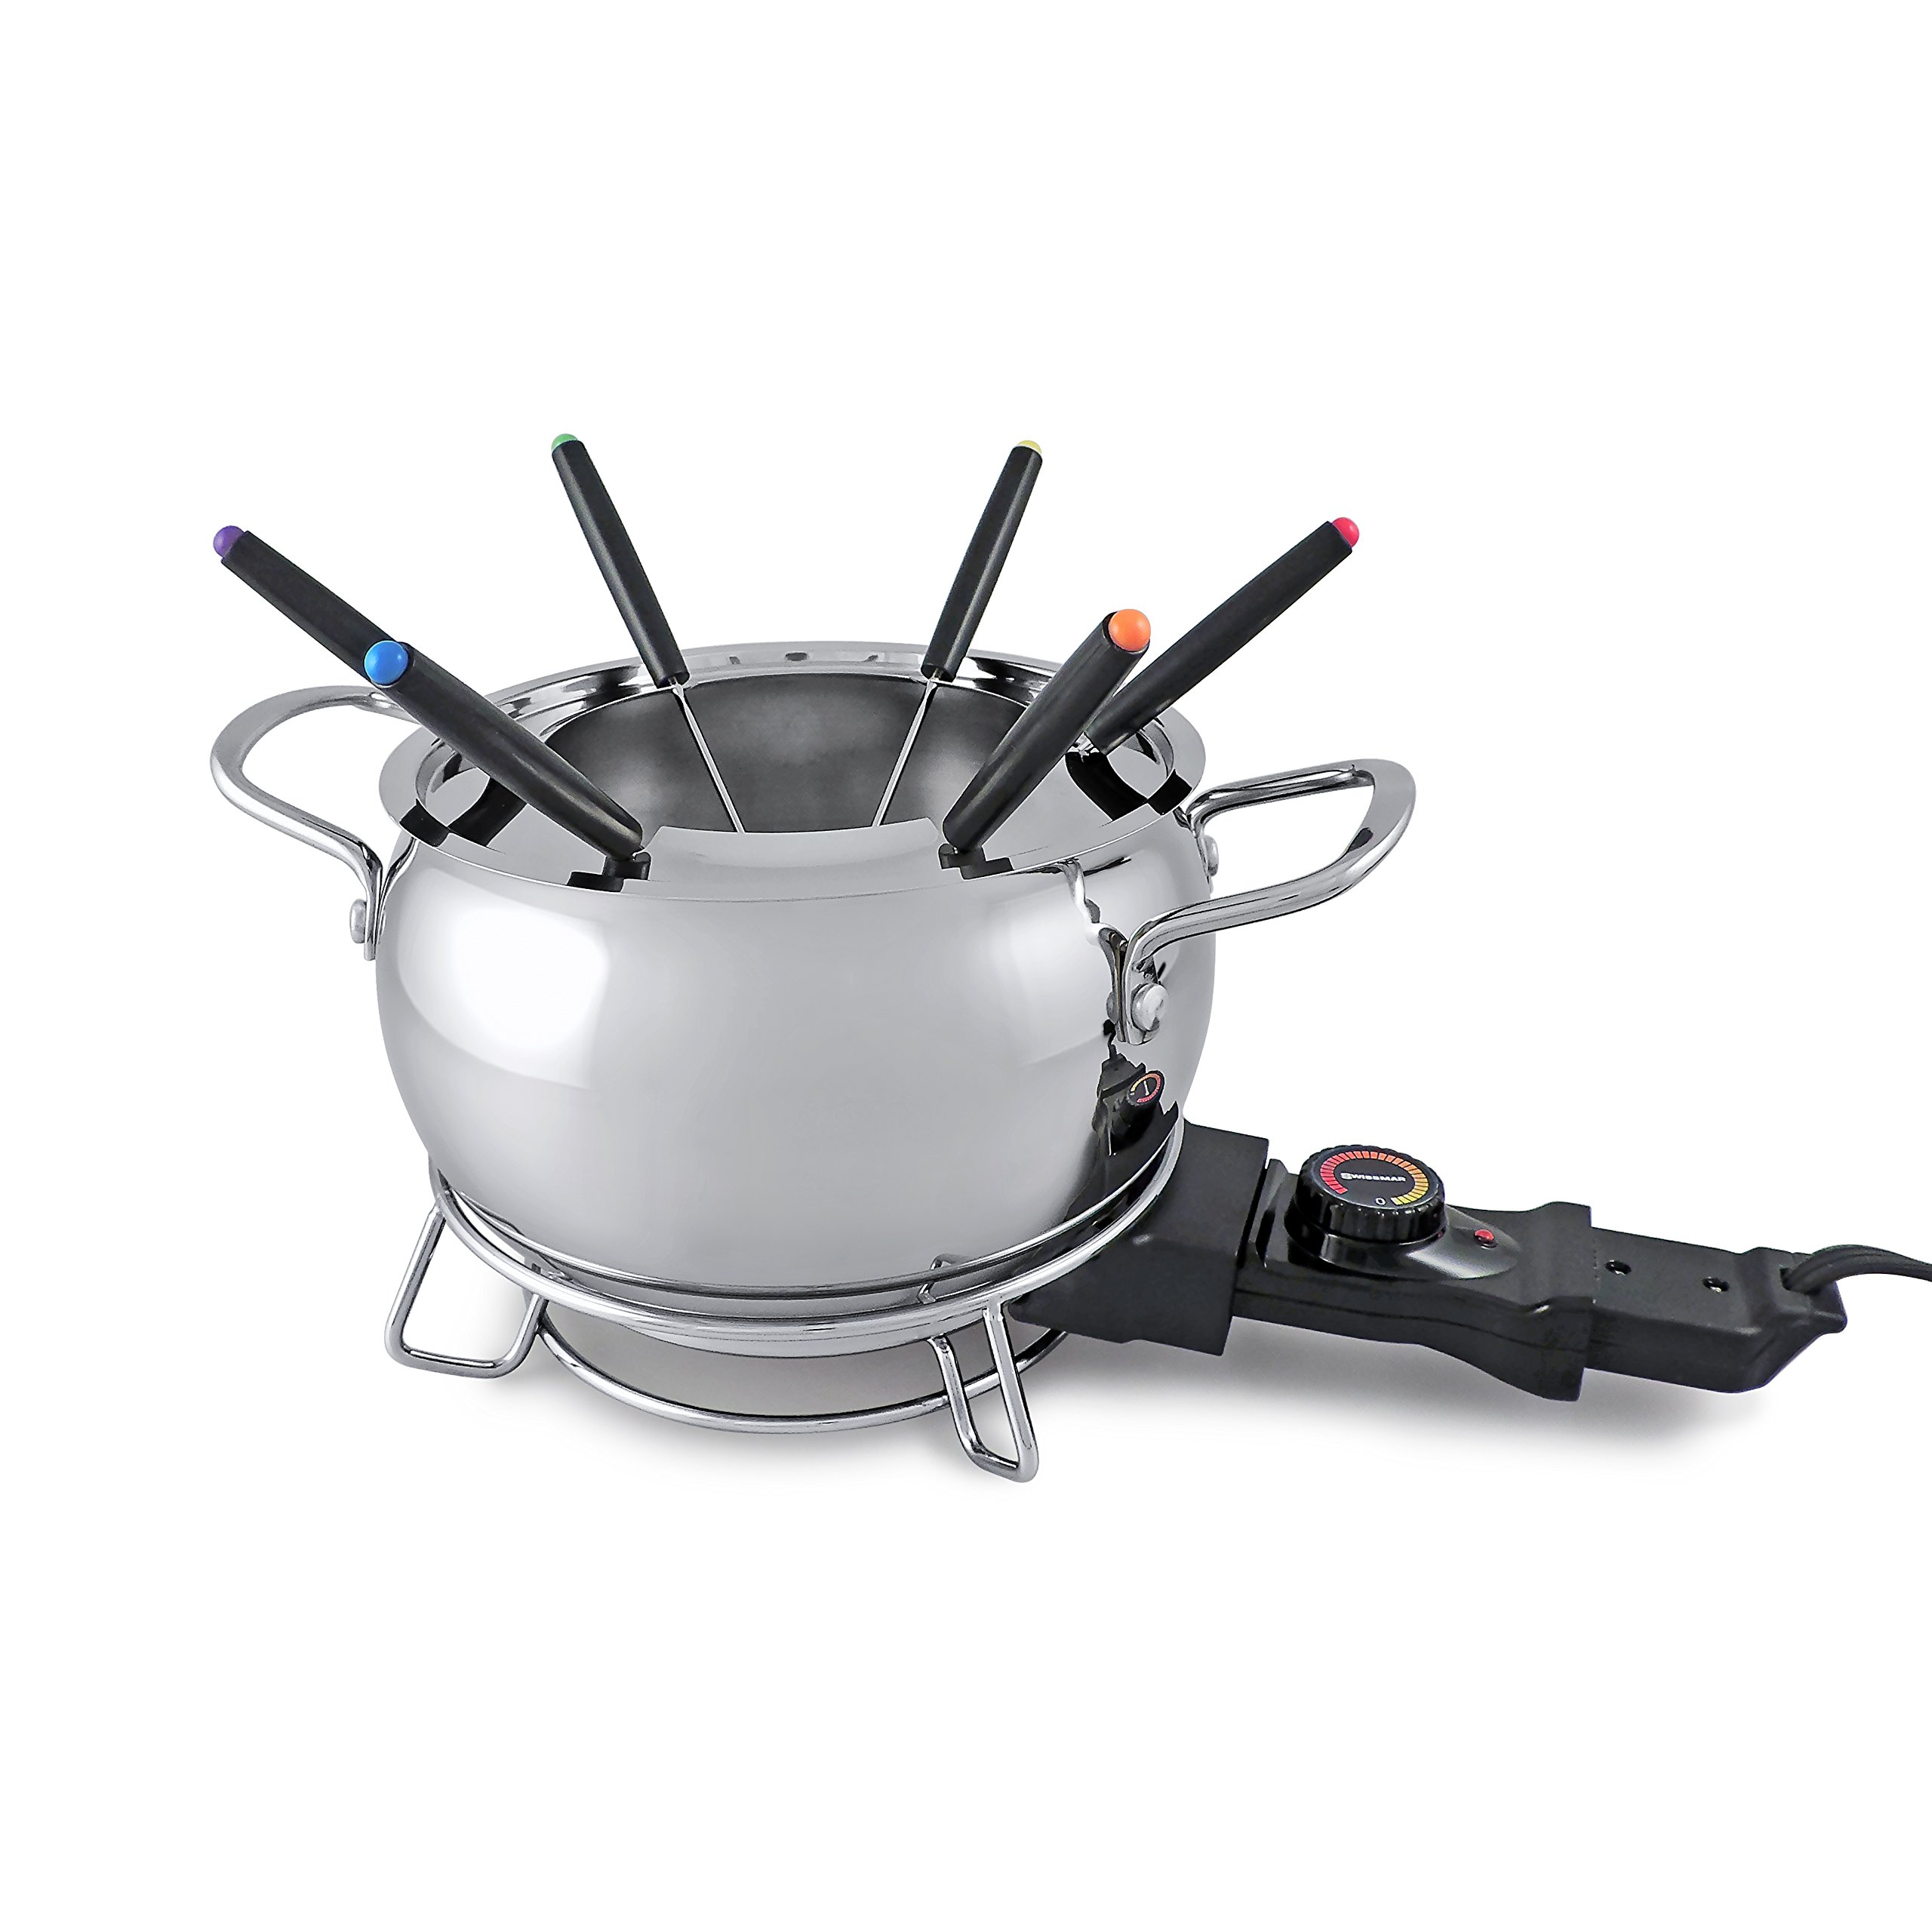 Swissmar Mont Brule Electric Fondue set